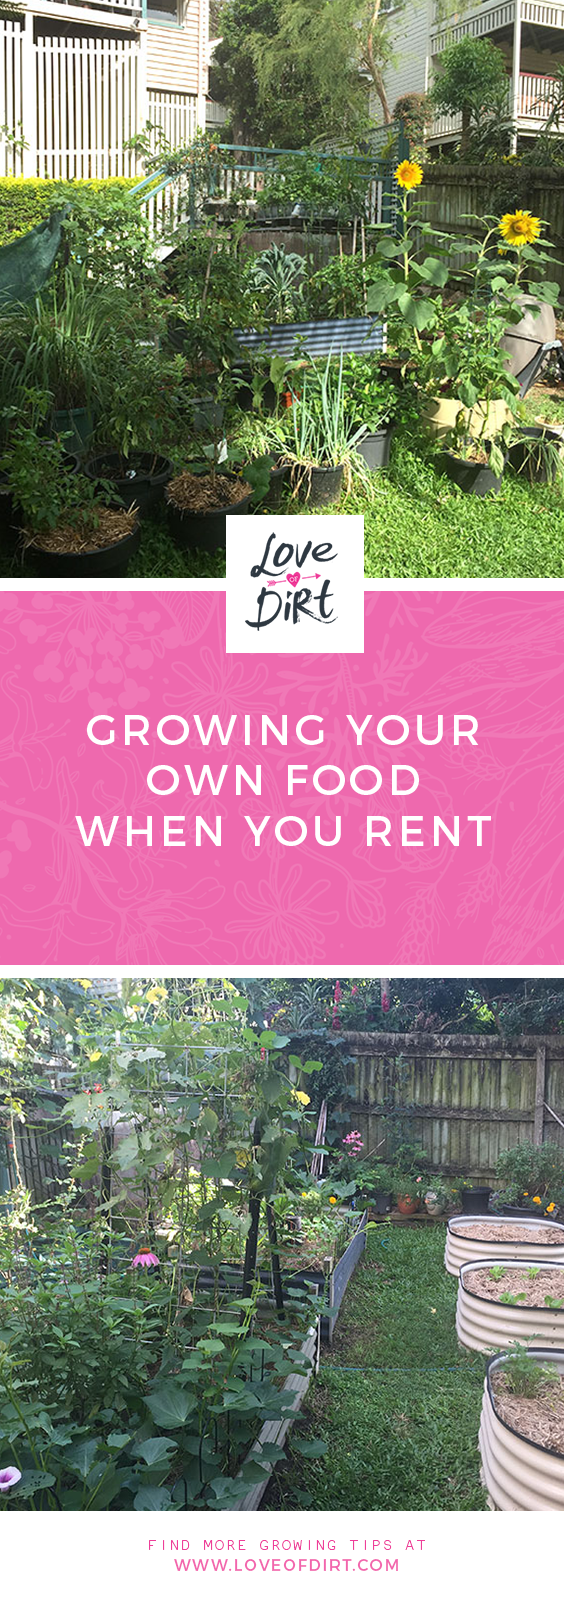 Growing your own food when living in a rental